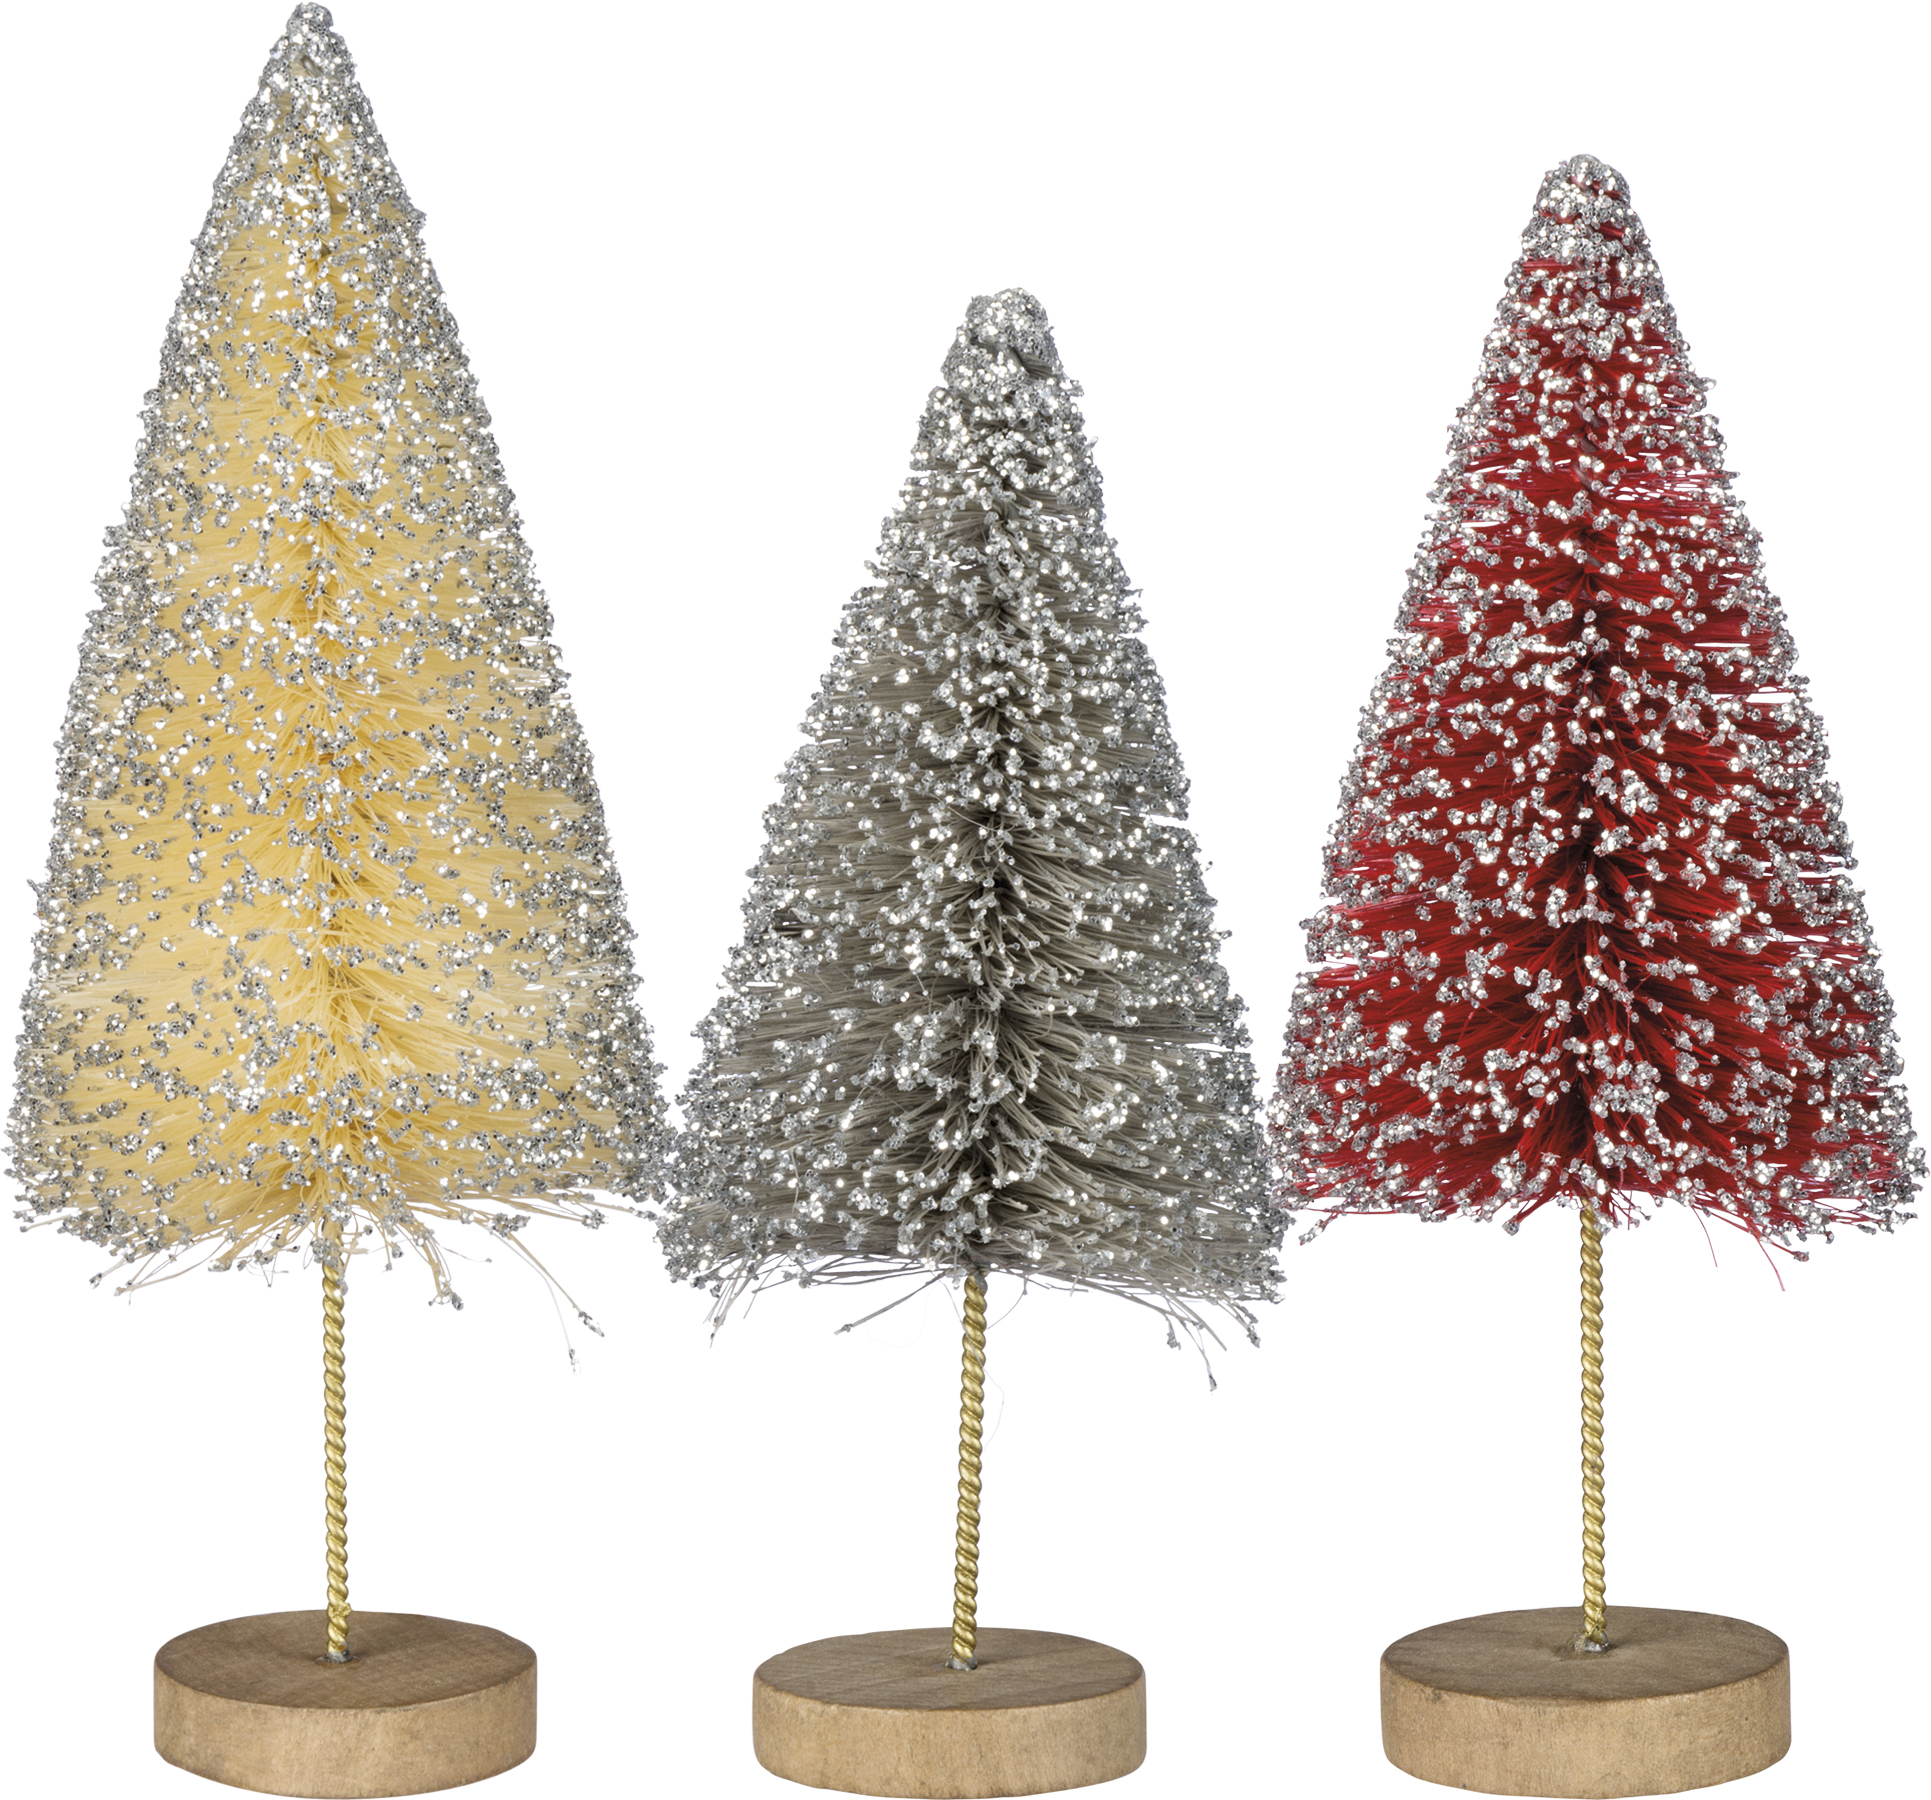 Set Of 3 Standing Bottle Brush Glitter Christmas Tree Figurines From Primitives By Kathy